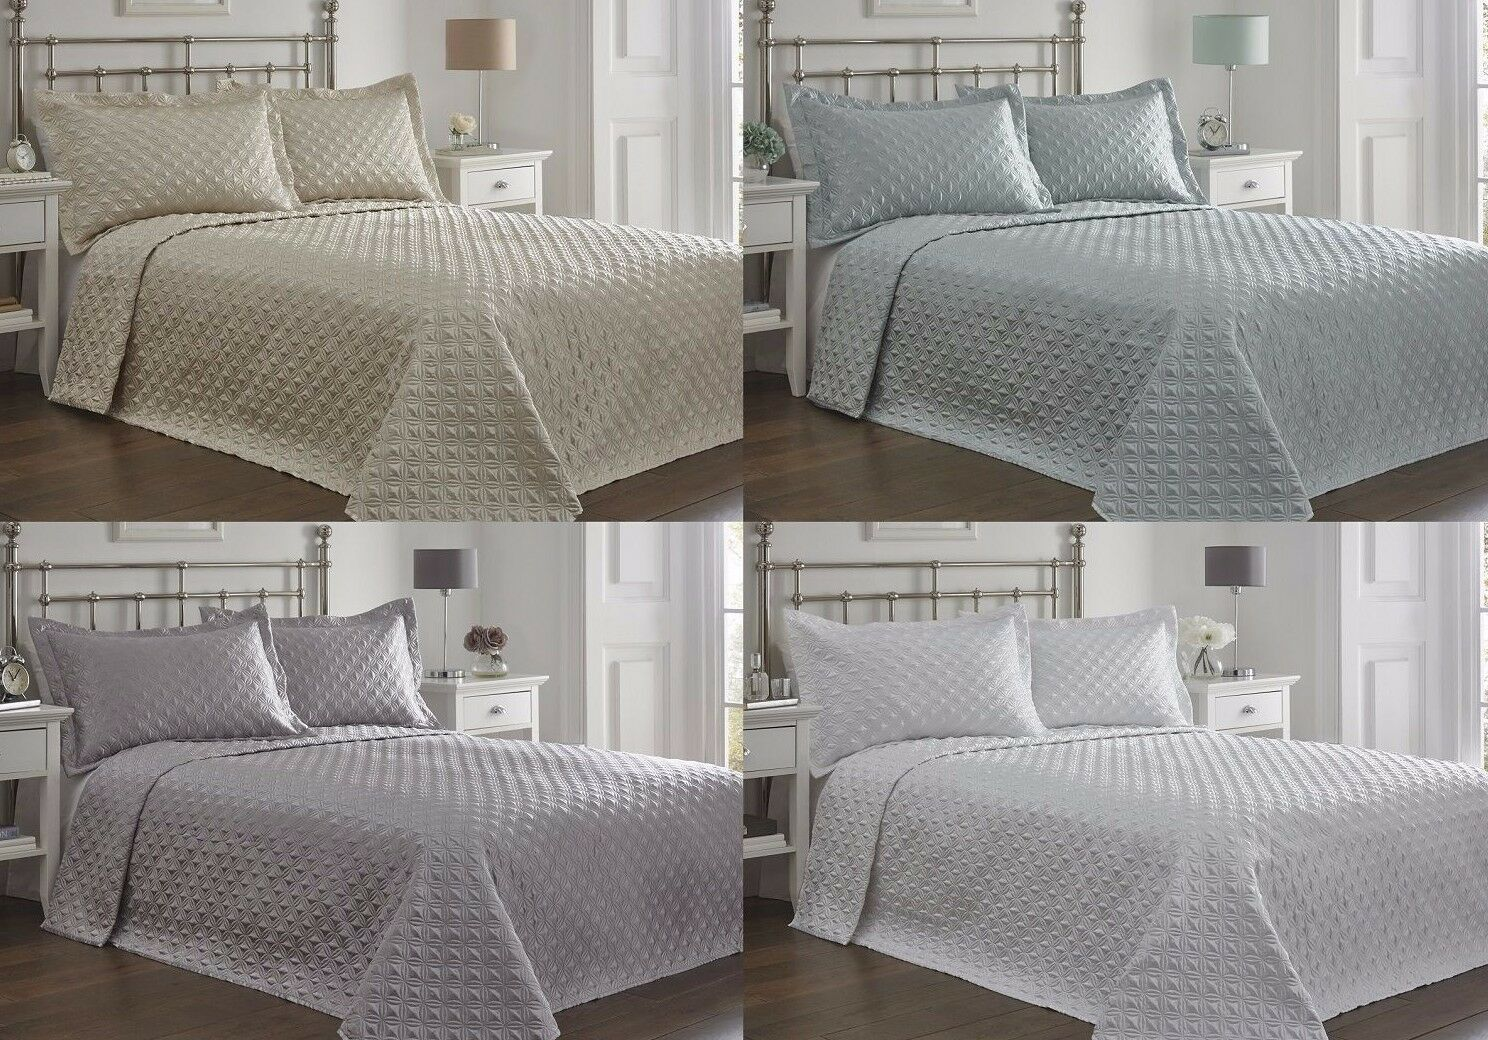 REGENT QUILTED BEDSPREAD & PILLOW SHAM SET,THROW OVER,GREAT VALUE FOR MONEY